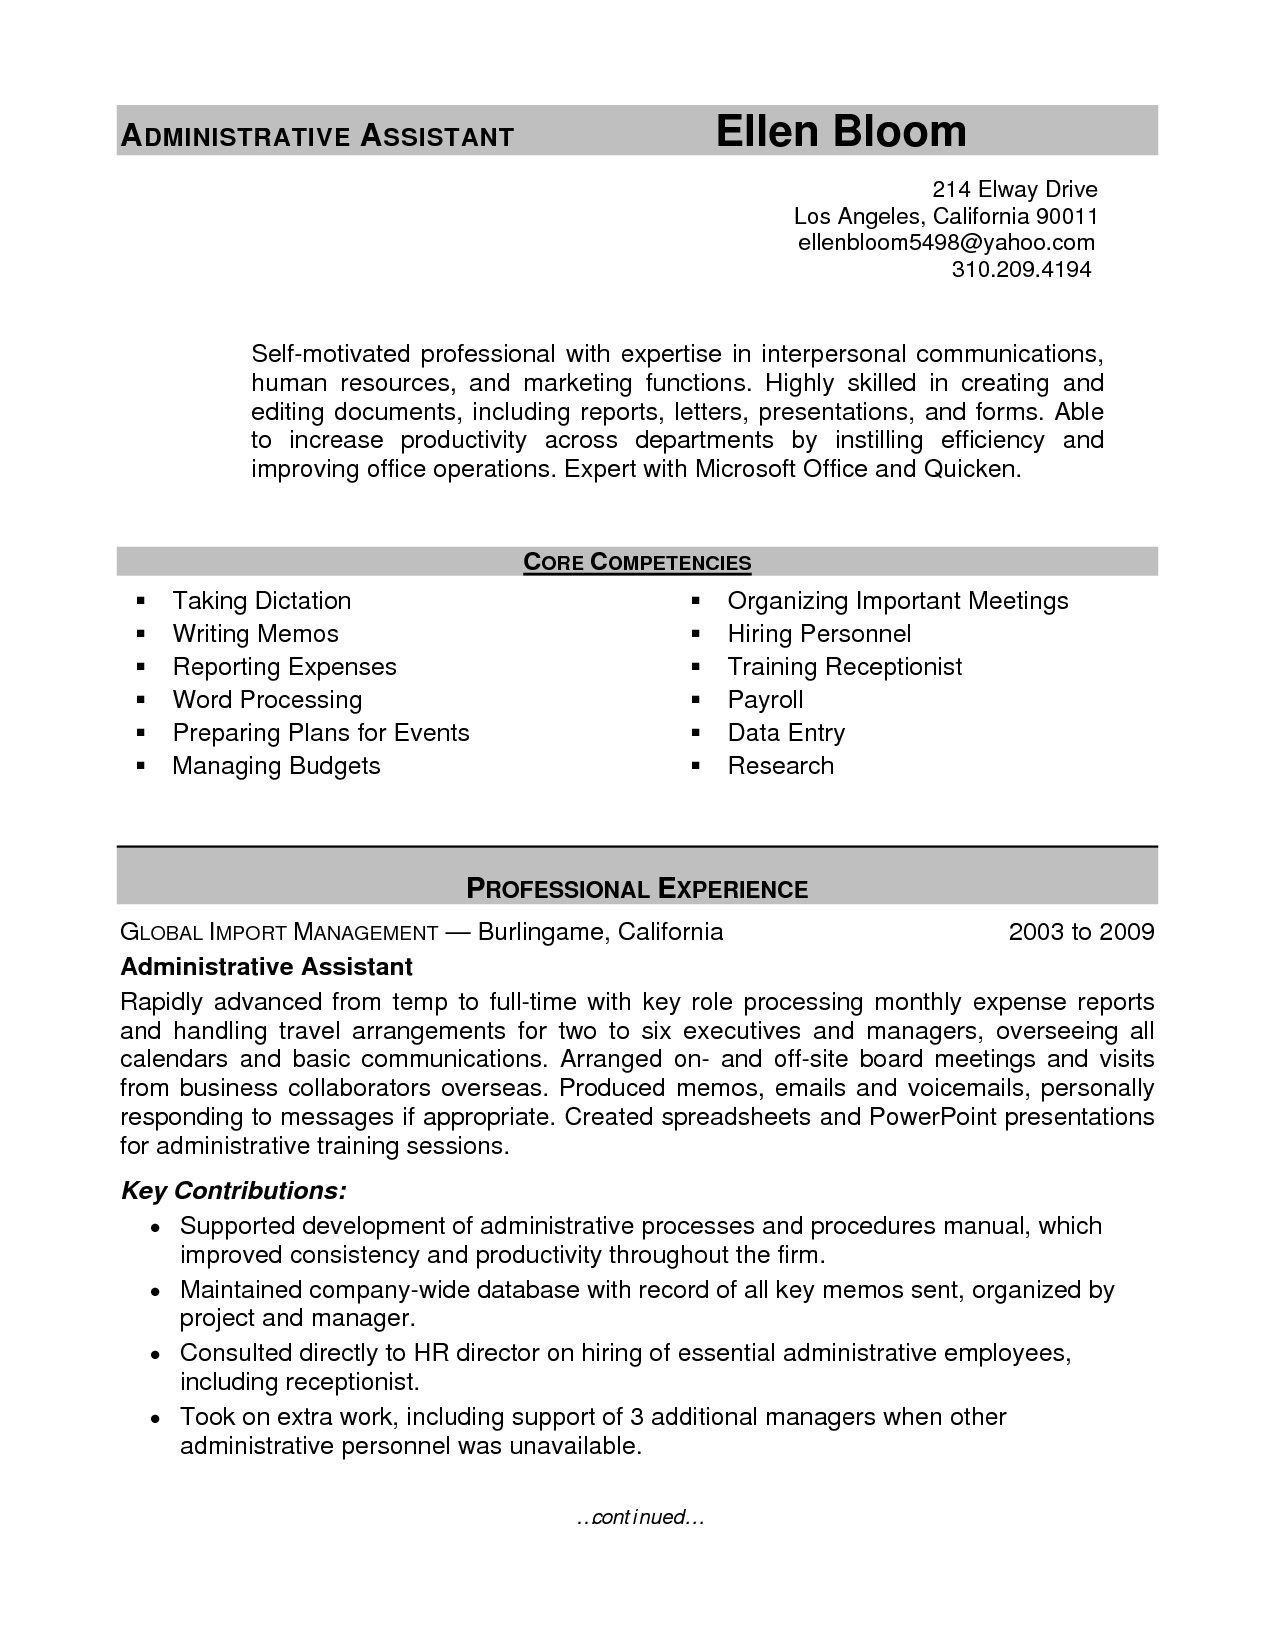 Best Administrative Assistant Resume